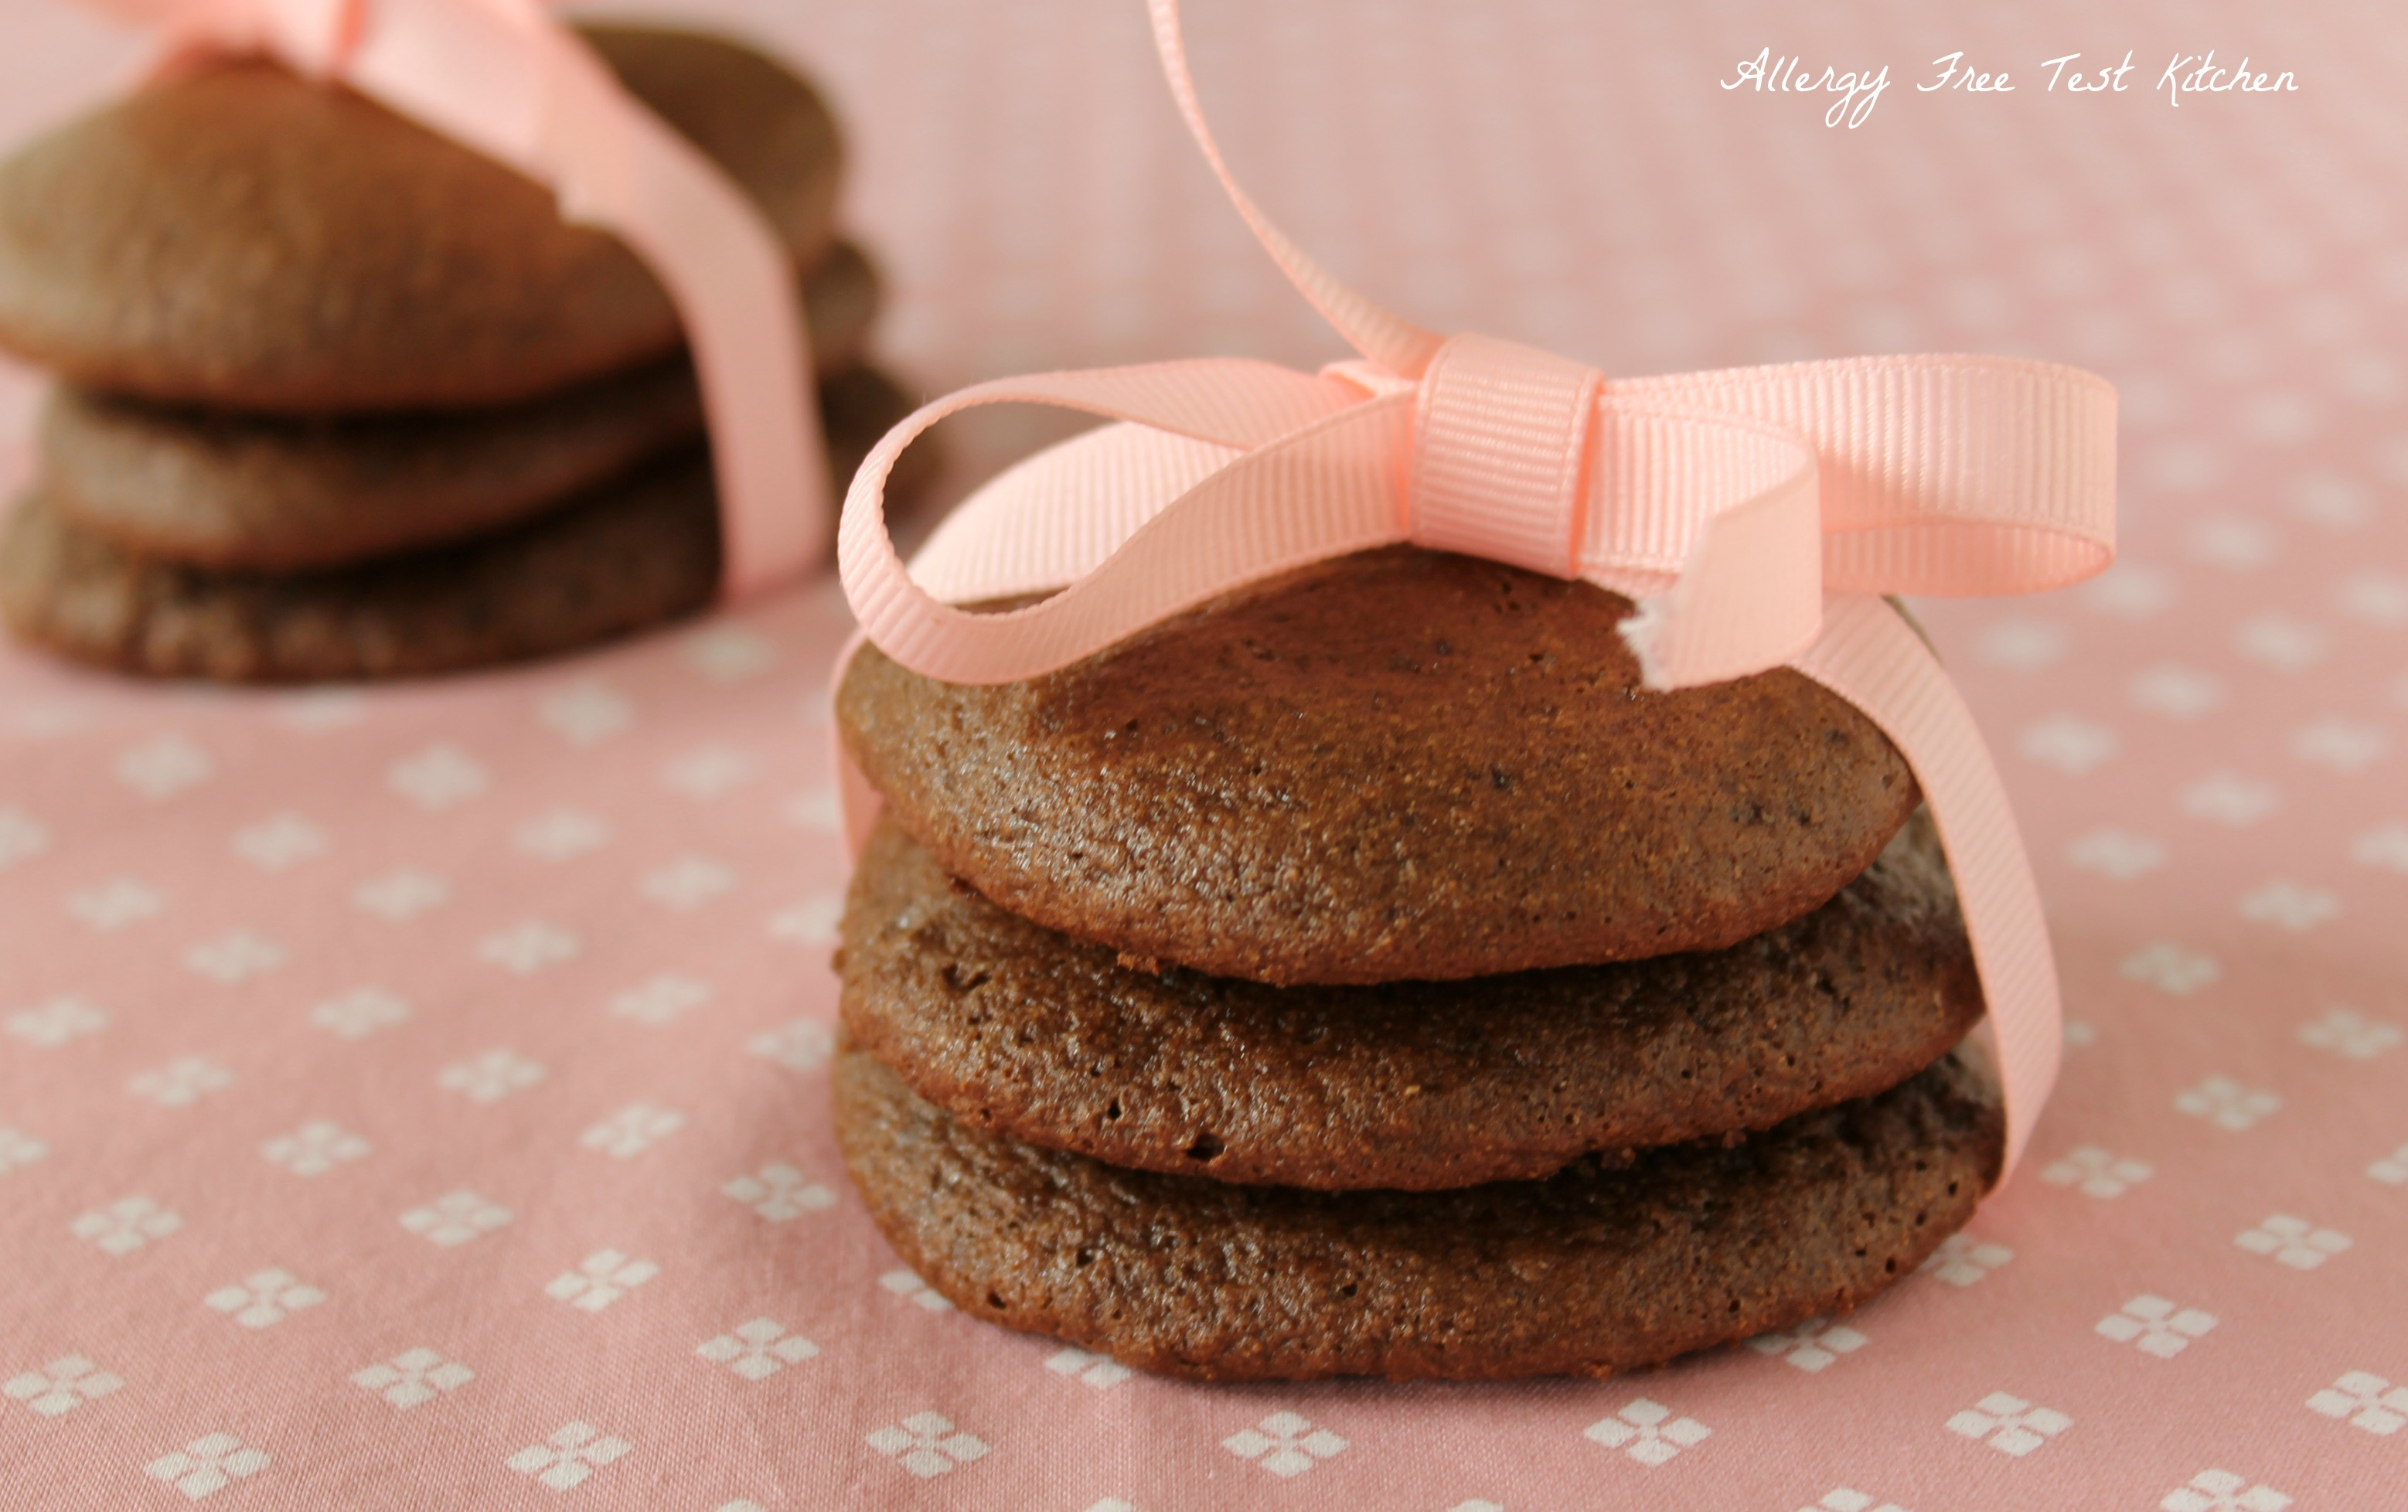 Mississippi Mud Cookies | Allergy Free Test Kitchen